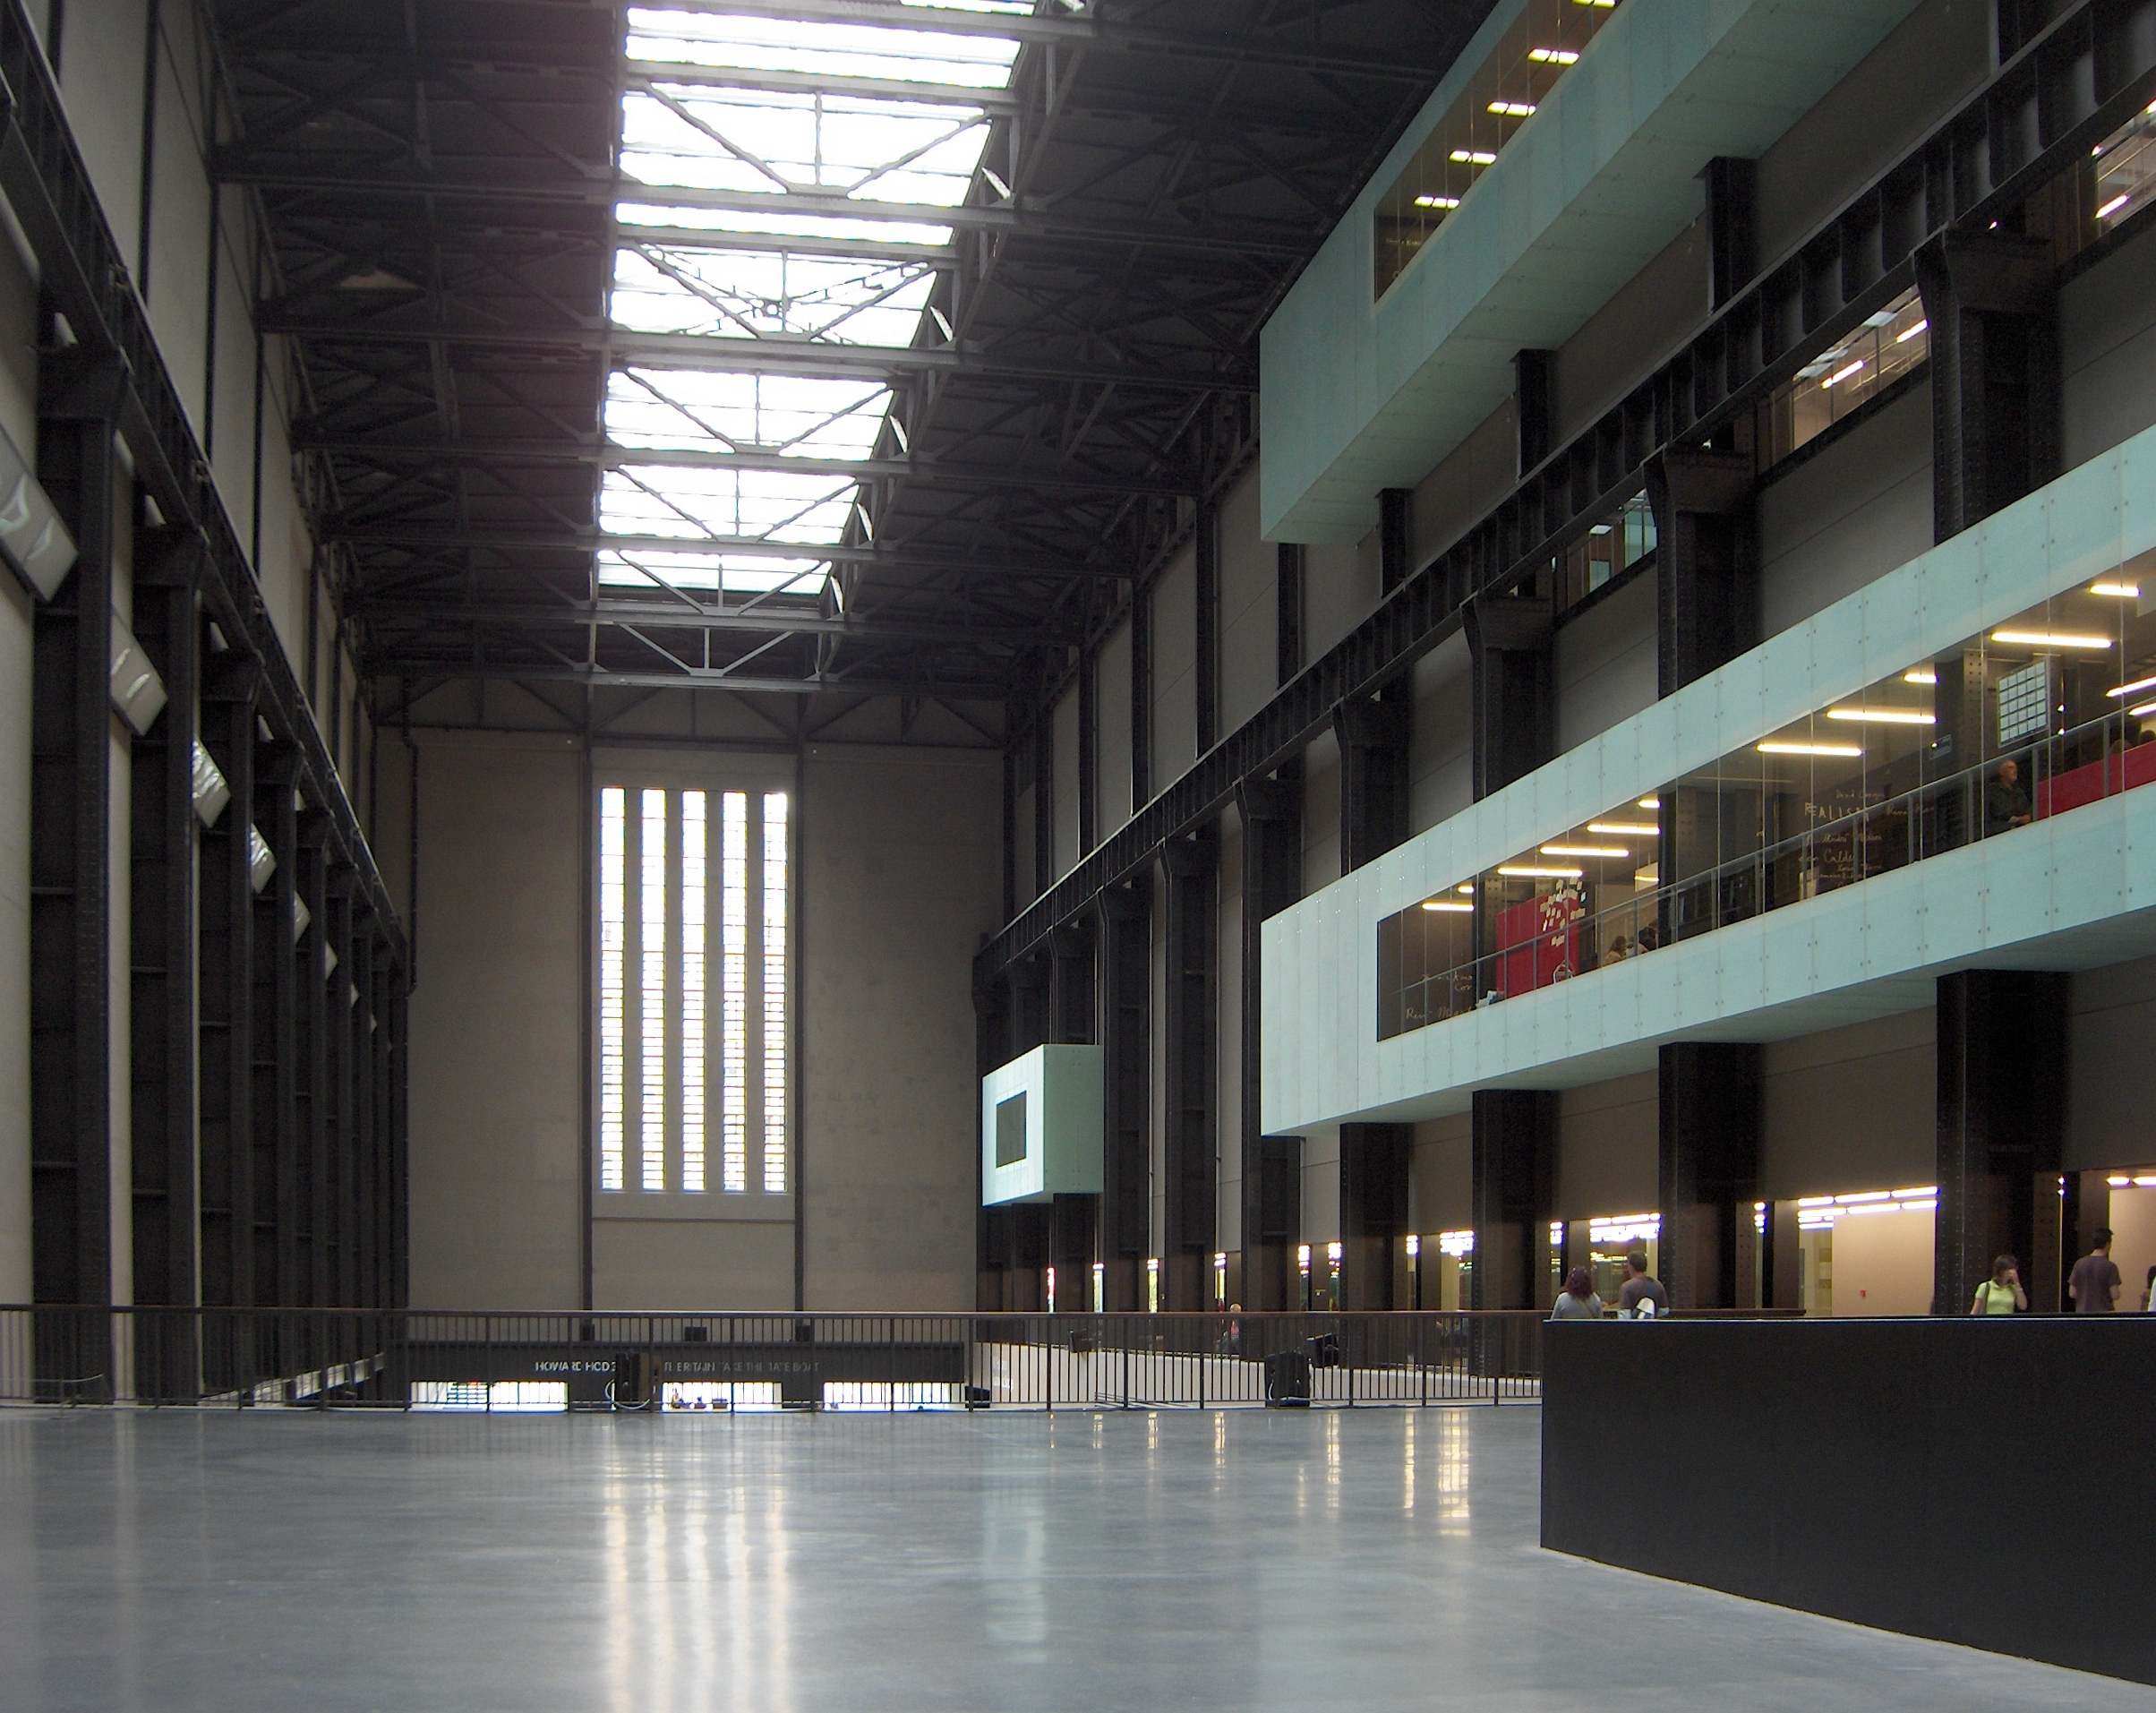 File:Hall Tate Modern 1.JPG - Wikimedia Commons